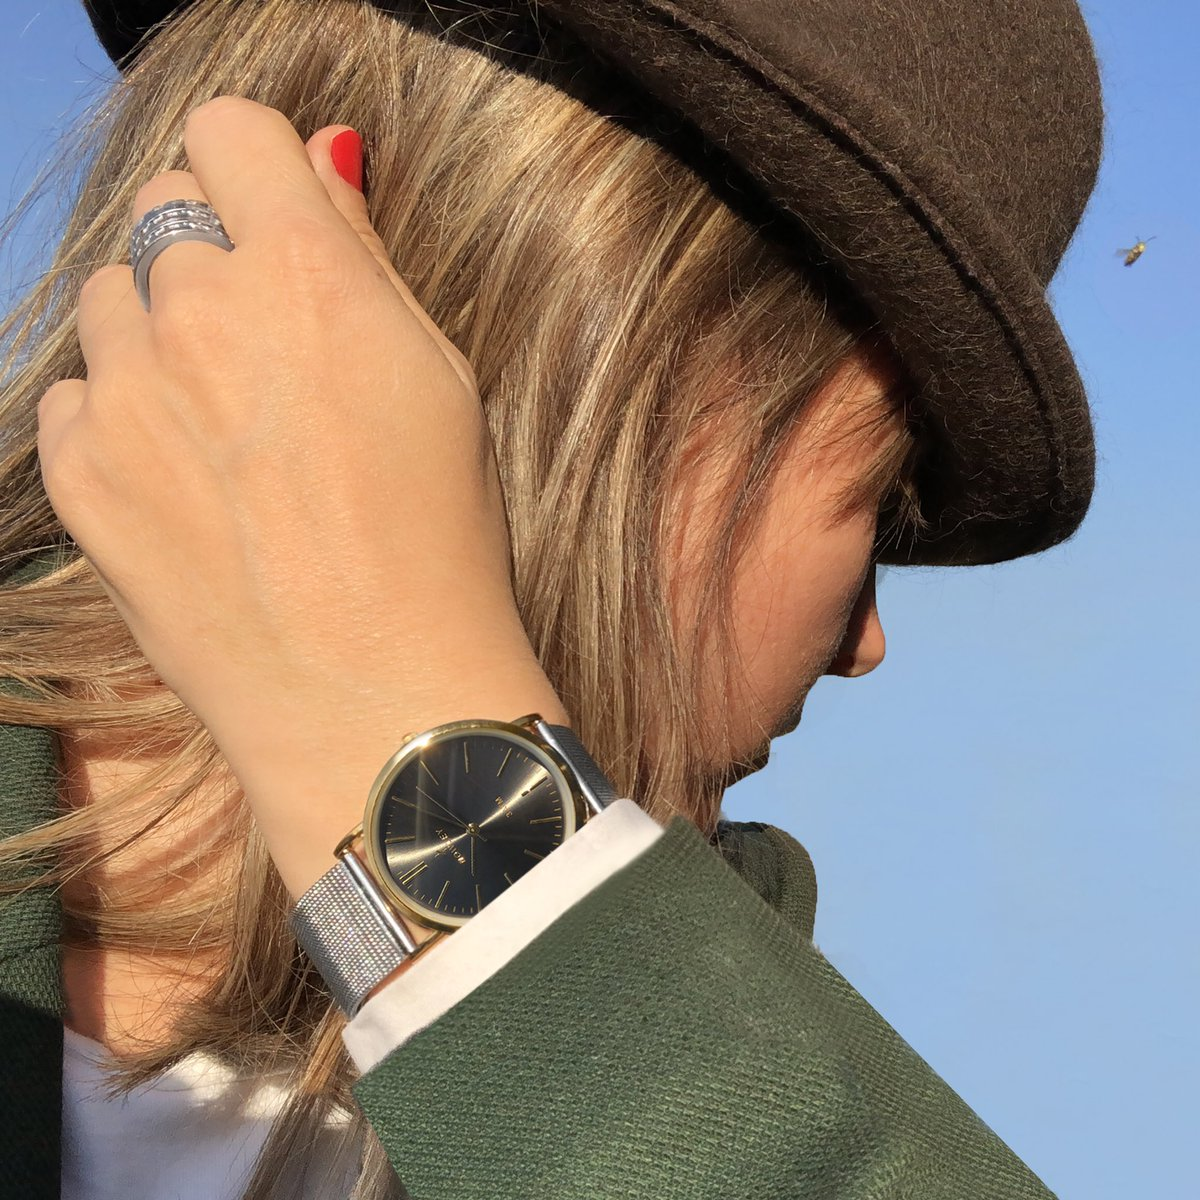 Chéquenlos RT nowley_relojes: Un reloj bicolor con mucho estilo #Nowley #Chic #bicolor #stylishwoman #fashion #cool #relojes #watches #woman #monday #bee #look #picofthedaypic.twitter.com/9s9Fcd6avv